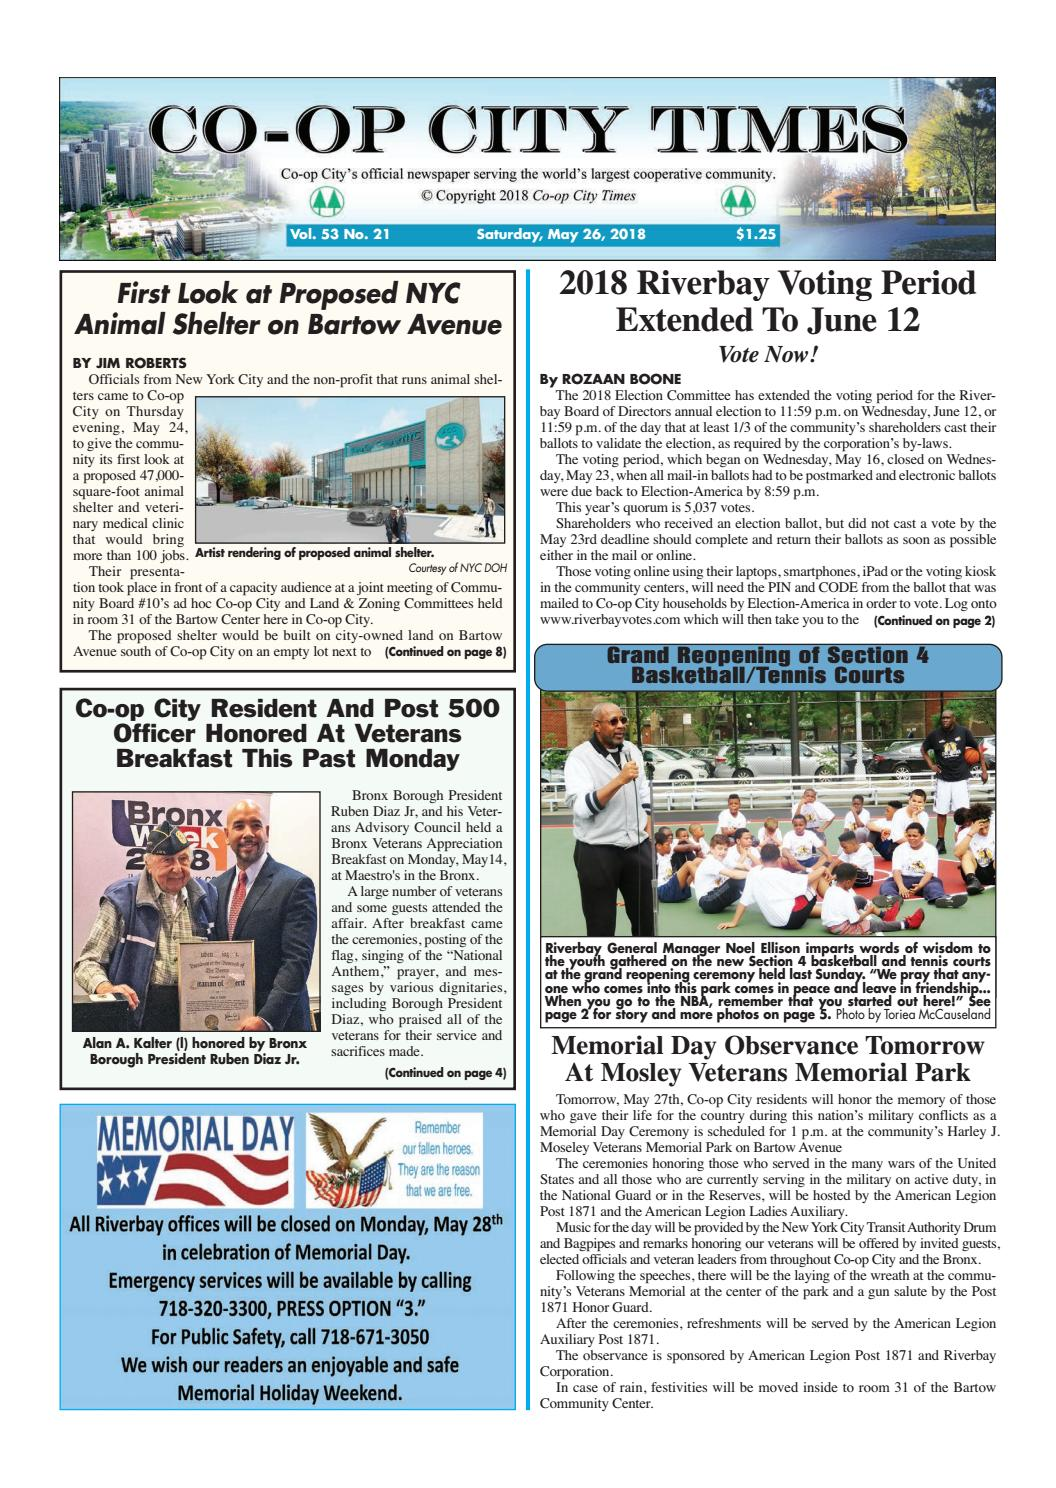 Co-op City Times 05/26/18 by Co-op City Times - issuu